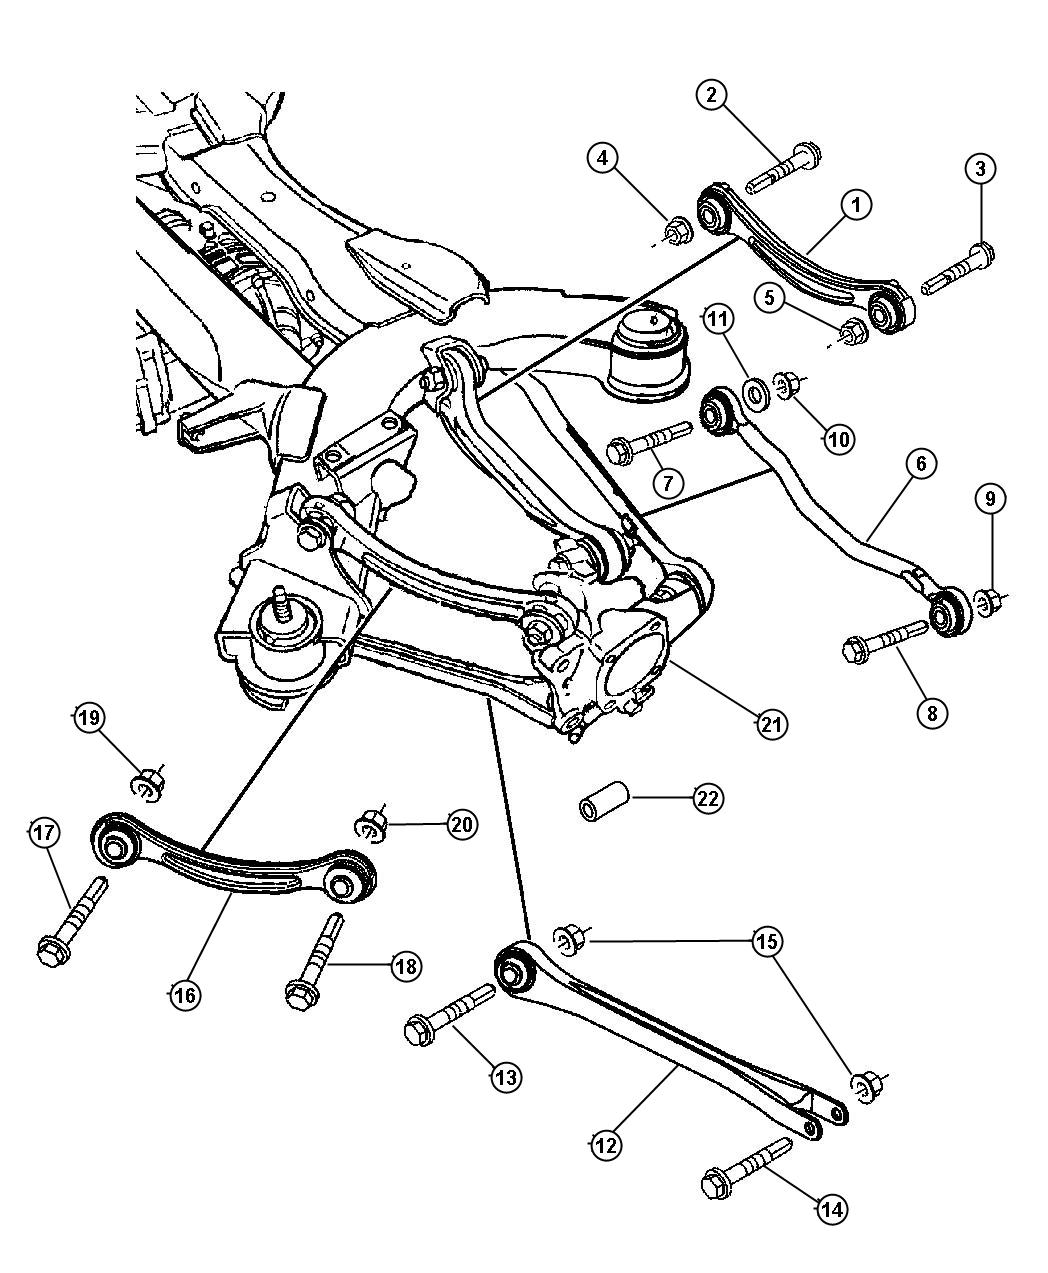 Bmw x3 fuel tank diagram together with 2001 325i bmw cooling system diagram in addition cooling